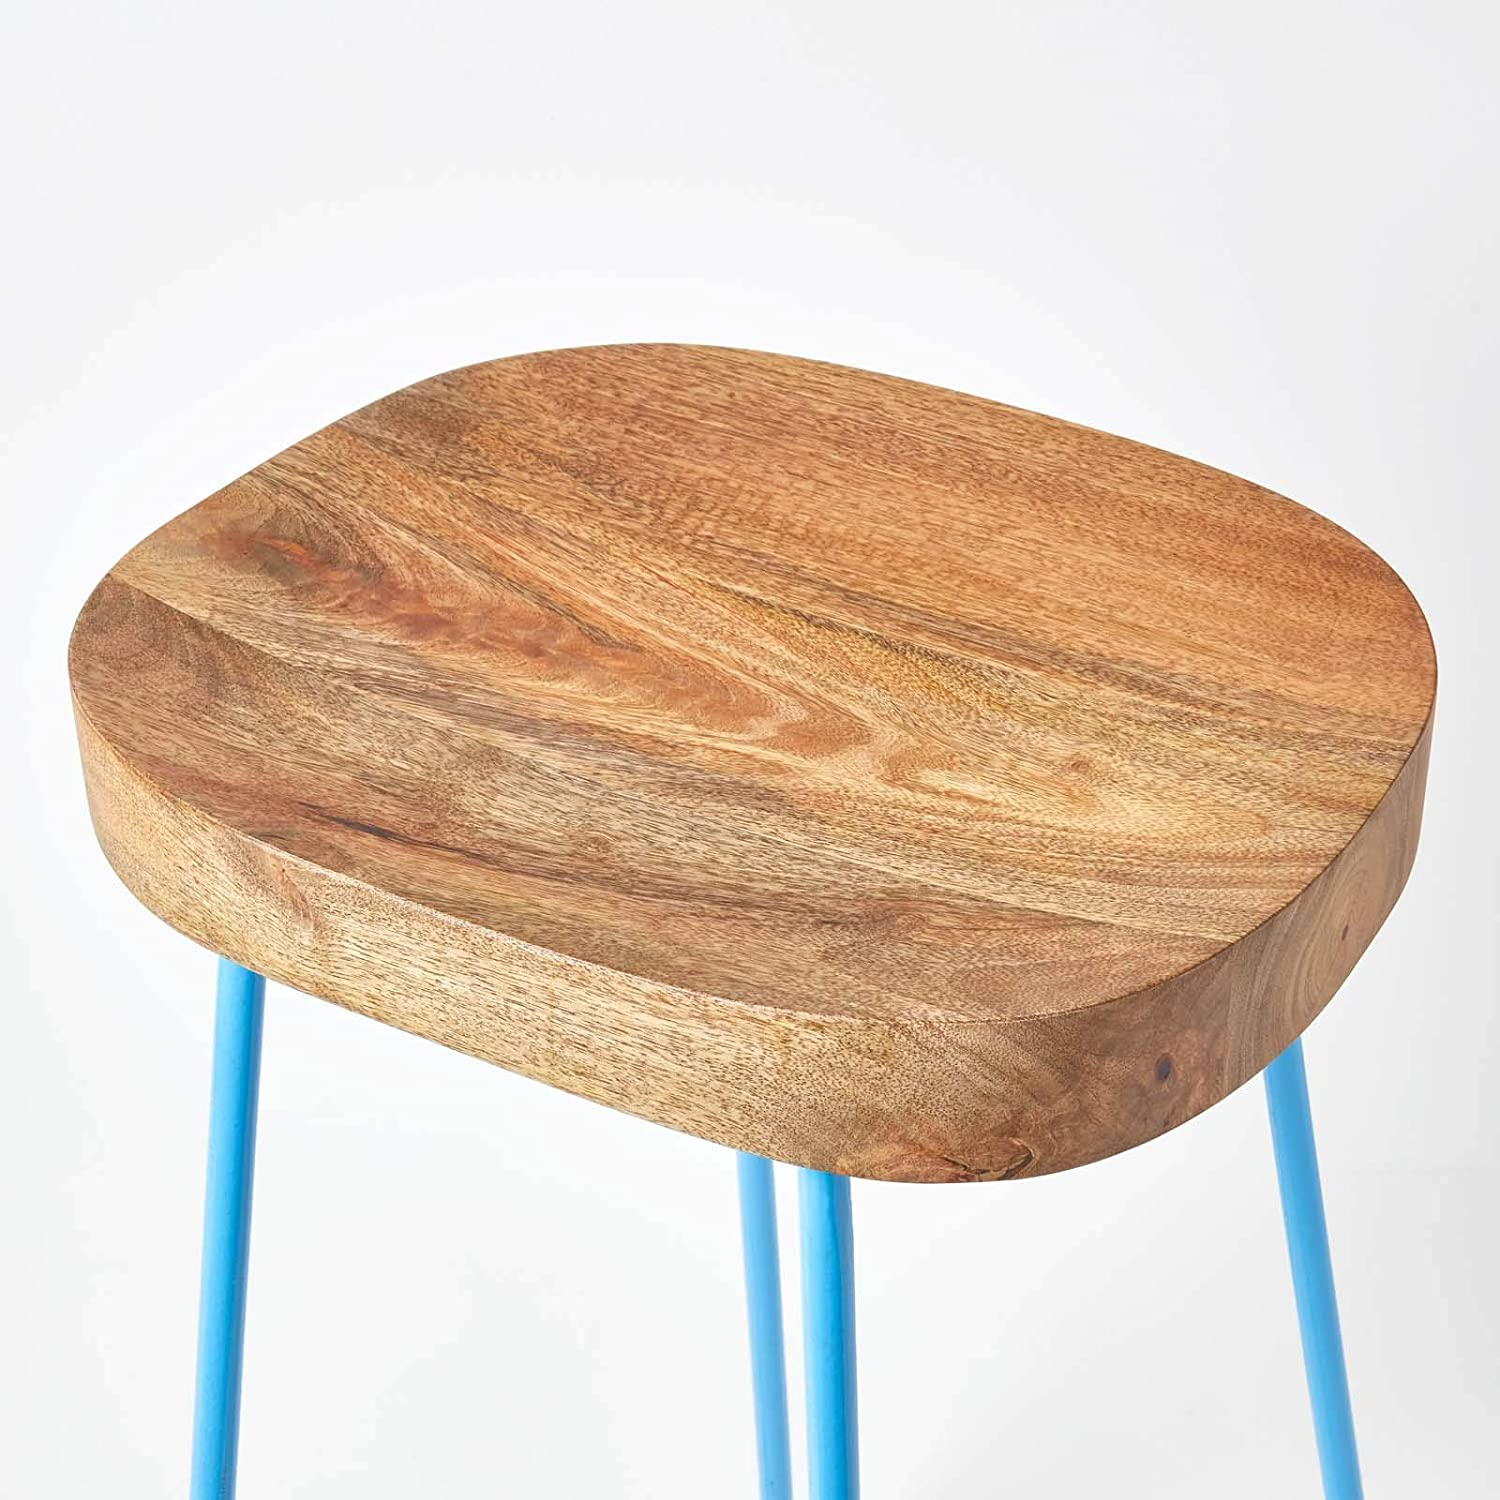 HOMESCAPES Ernest Barstool, Handcrafted with 100% Heavyweight Solid Mango Wood Seat and Metal Legs, Blue, 76cm High Blue